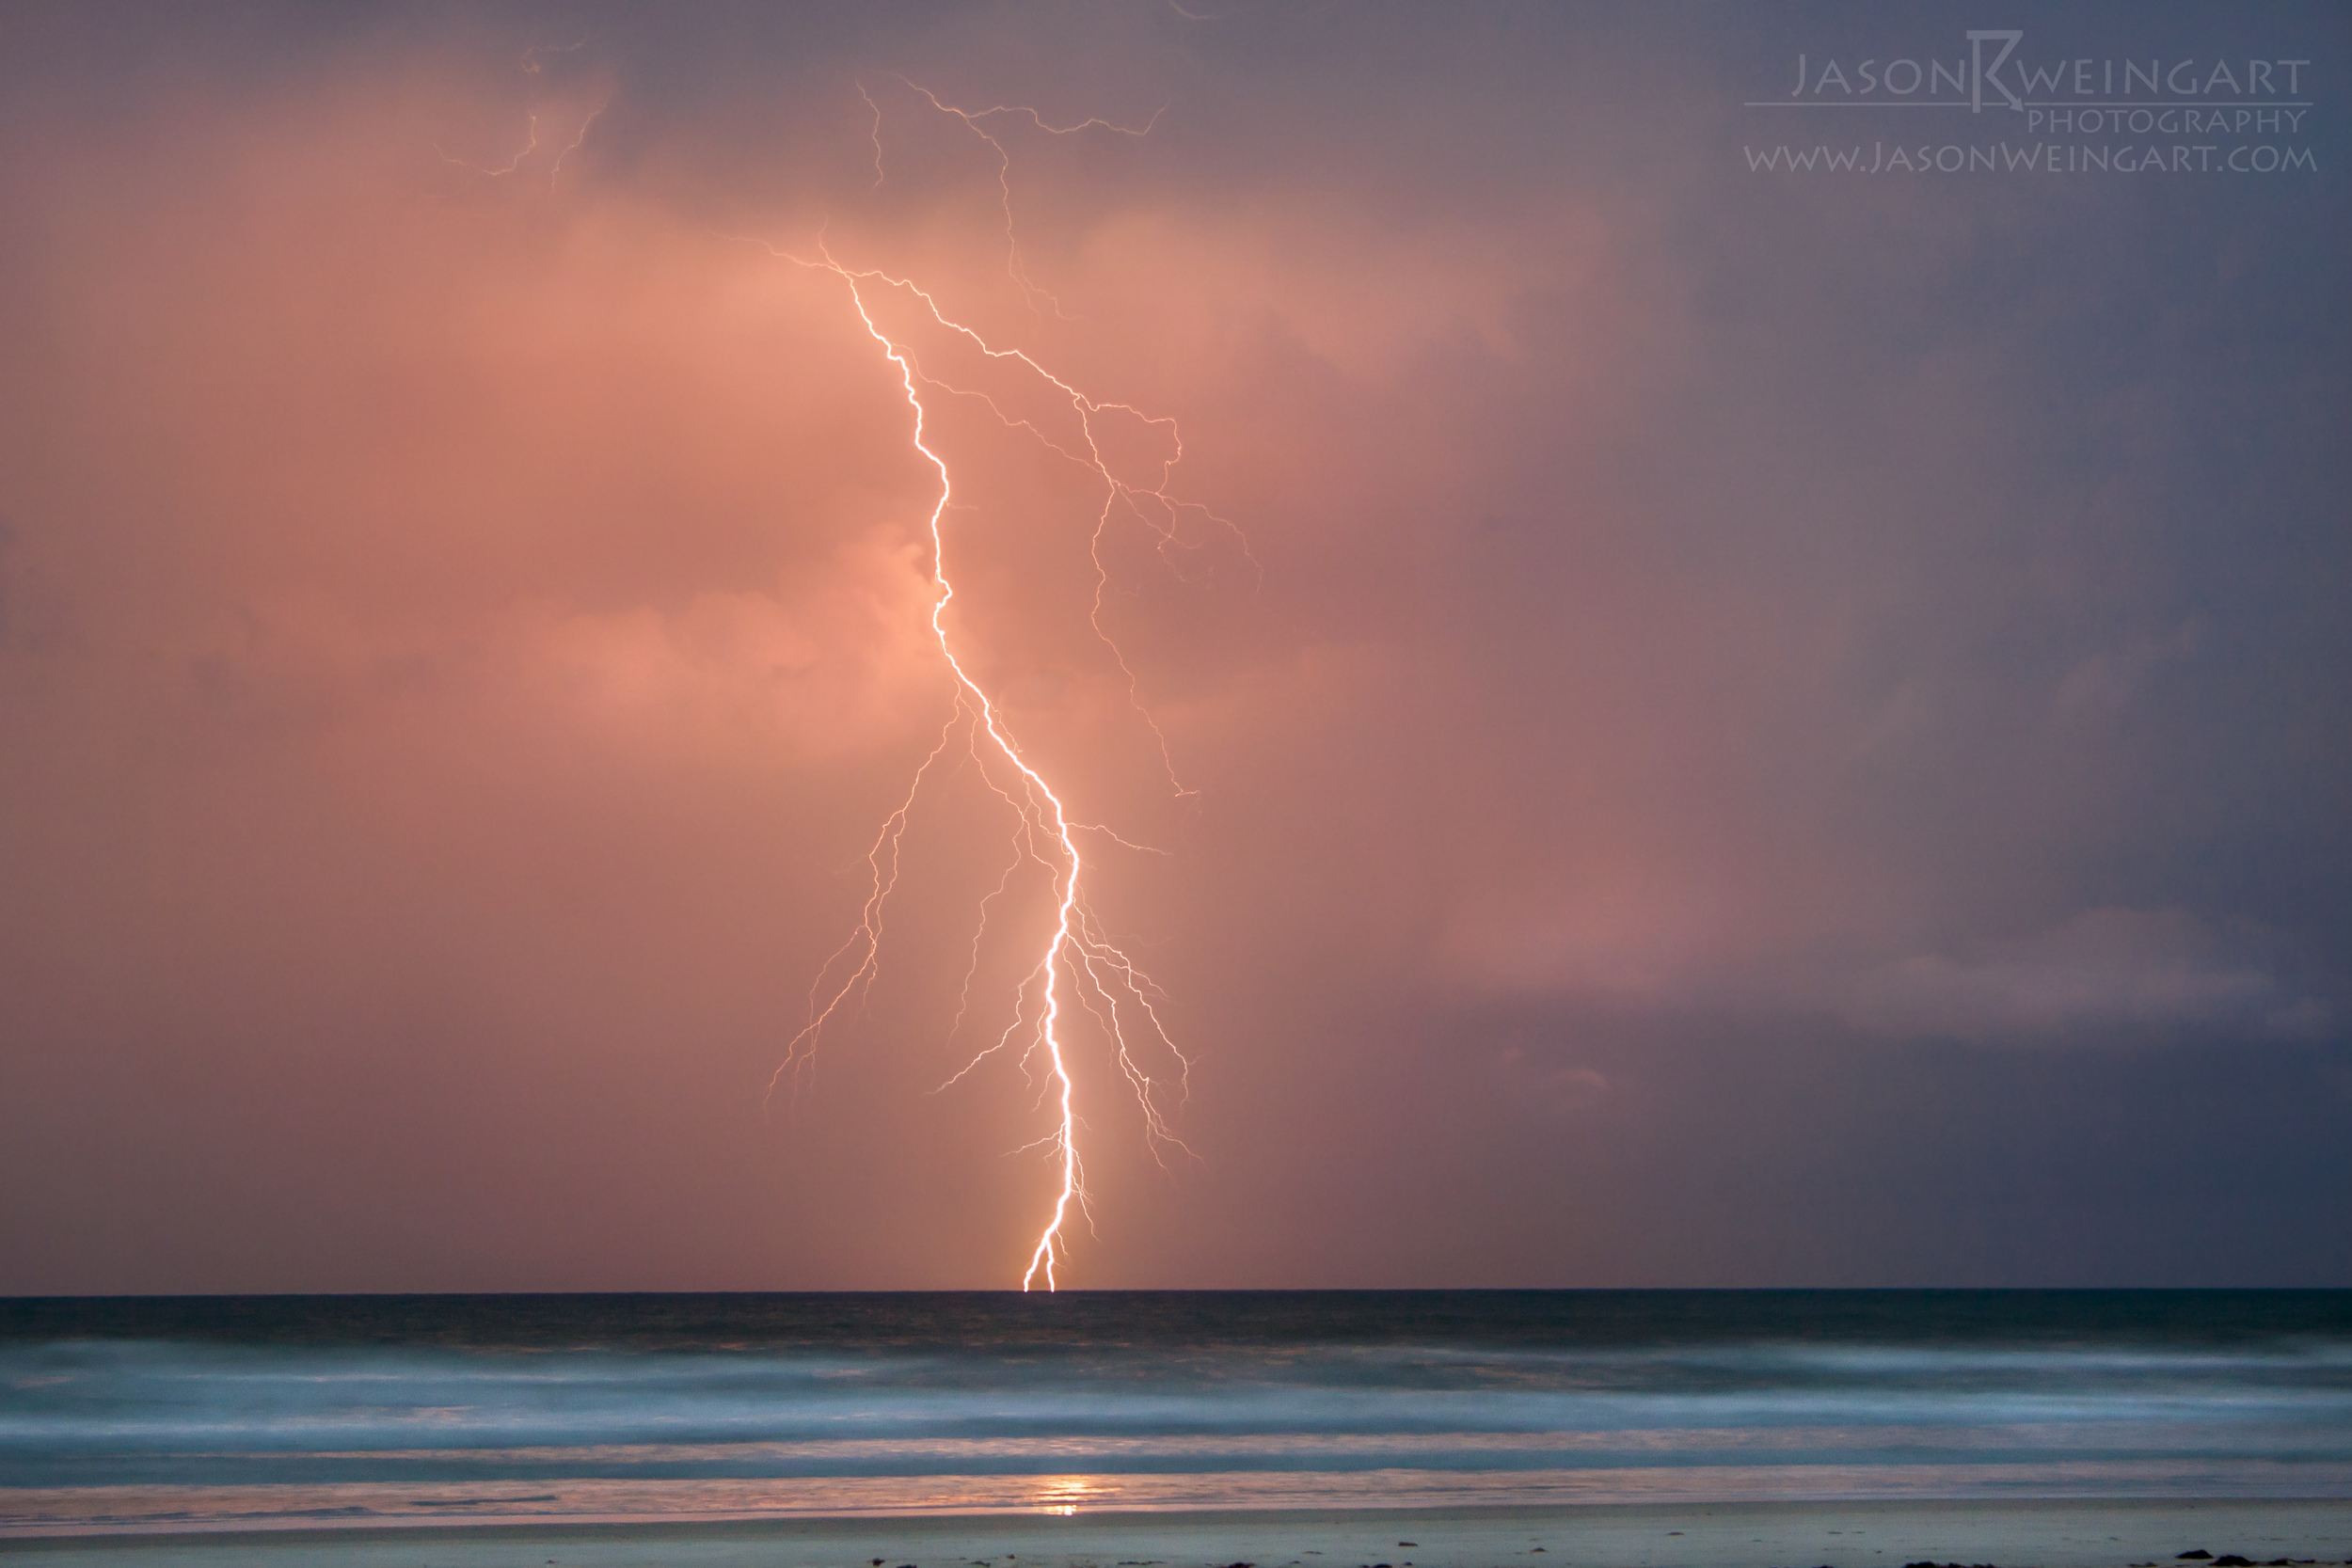 Lightning off the coast of New Smyrna Beach, Florida on May 13, 2011